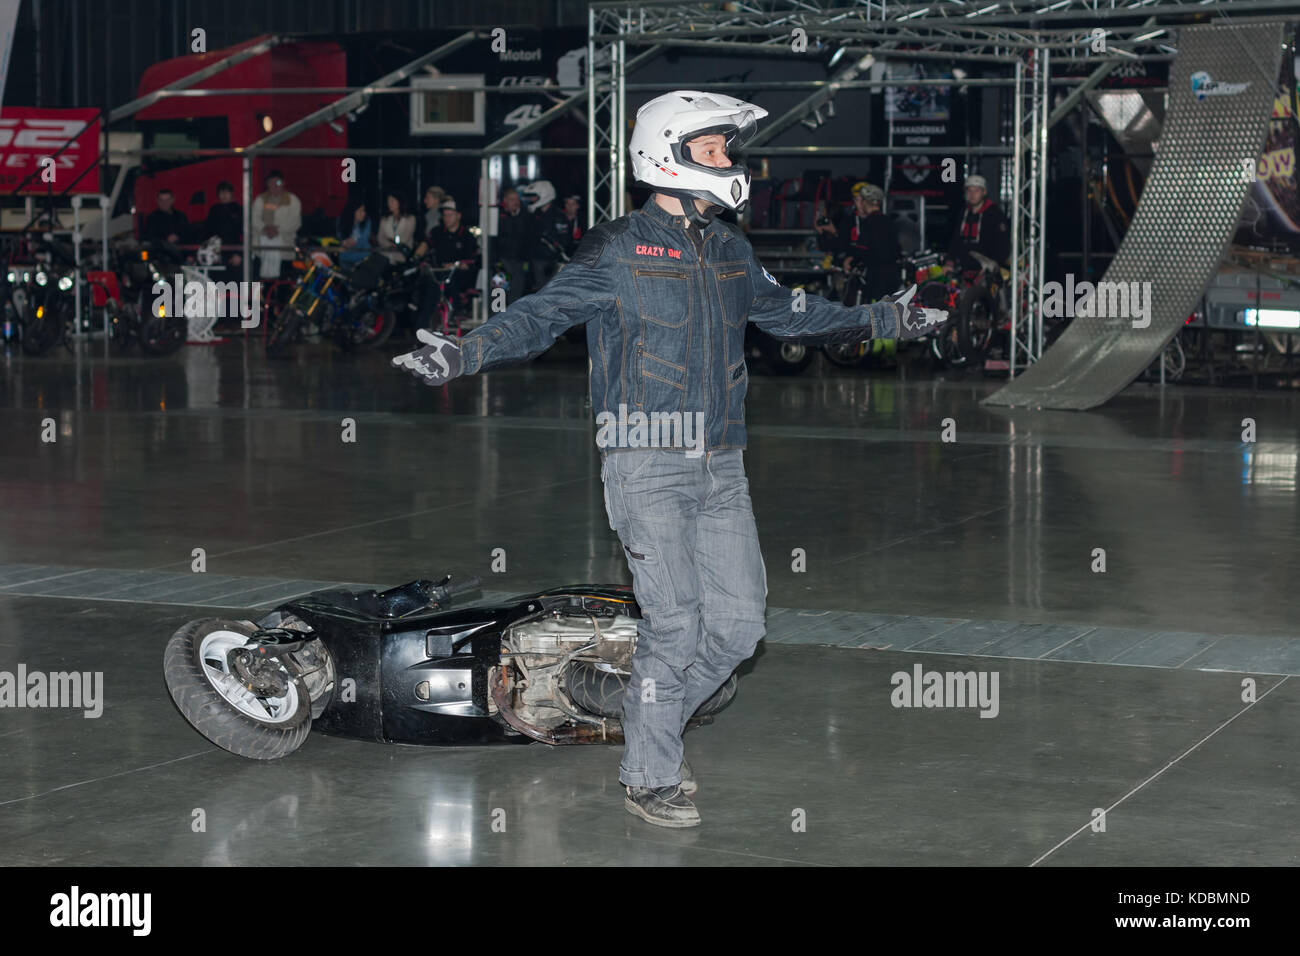 BRNO, CZECH REPUBLIC-MARCH 4,2016: Stuntman with a scooter during stunt show on International Fair for Motorcycles - Stock Image